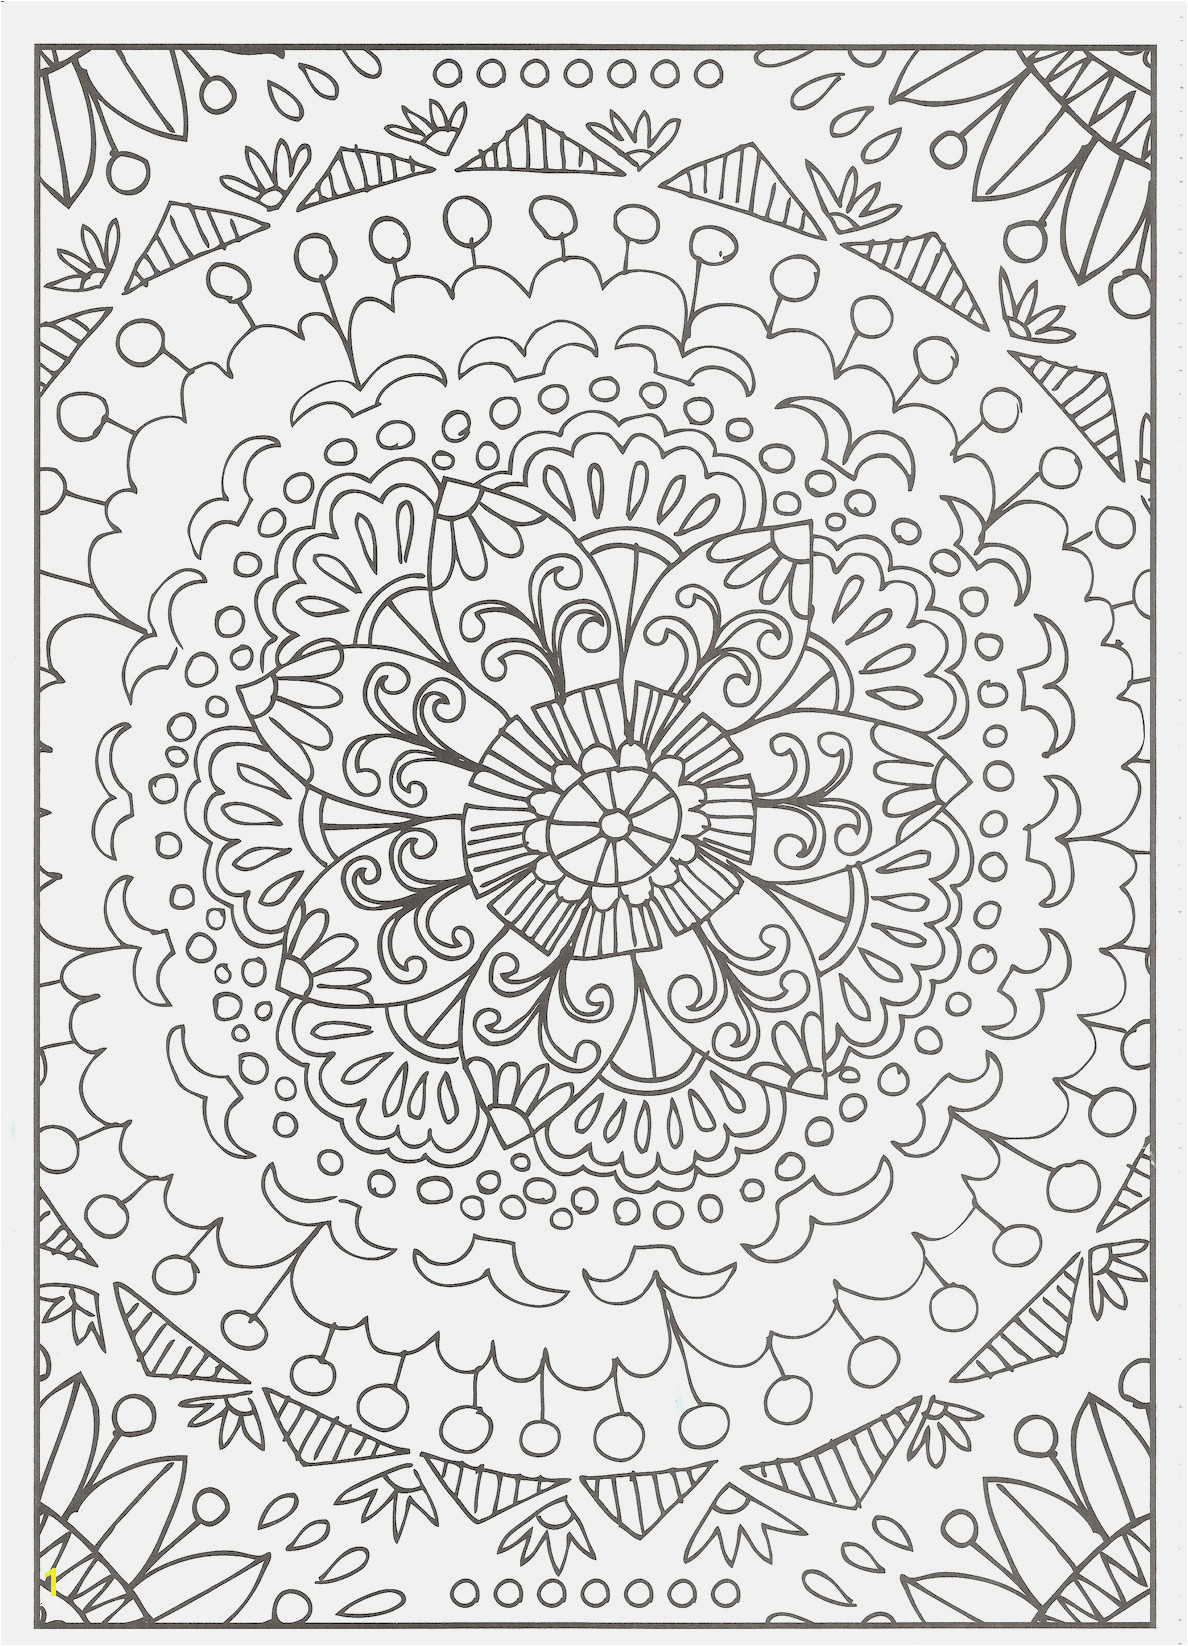 Intricate Mandala Coloring Pages Plex Coloring Pages Best Easy Plex Coloring Book 21csb 11p